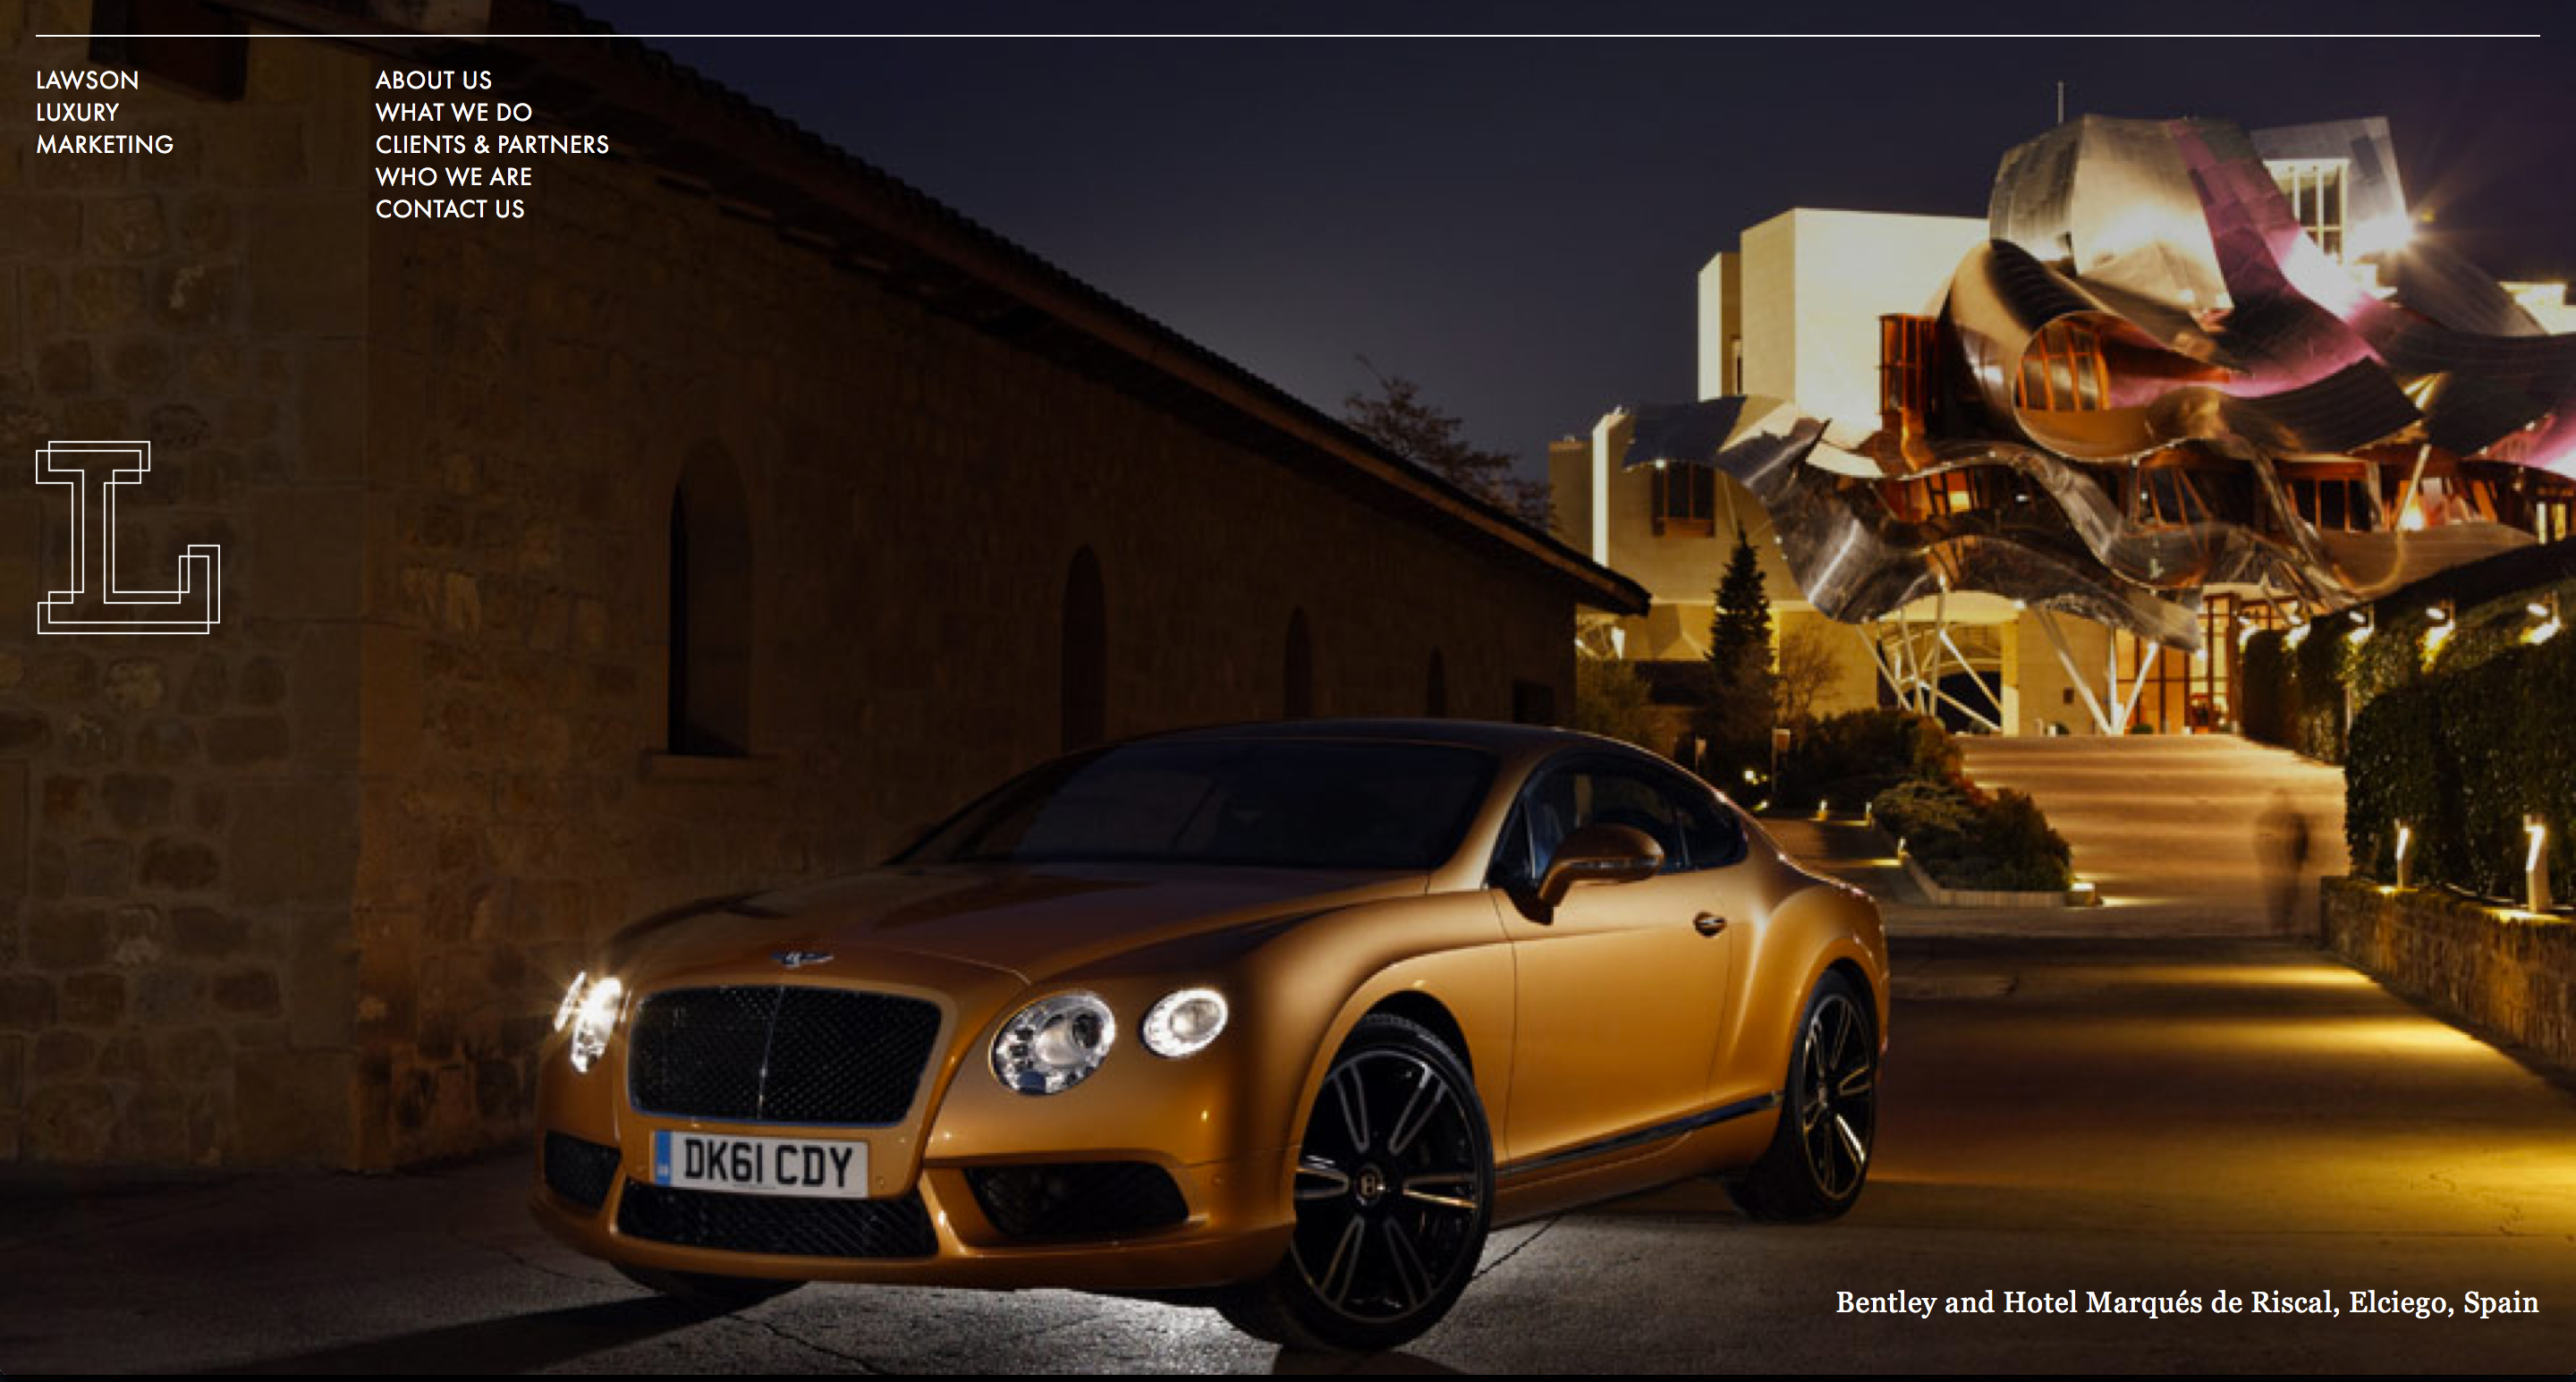 Lawson Luxury - Bentley